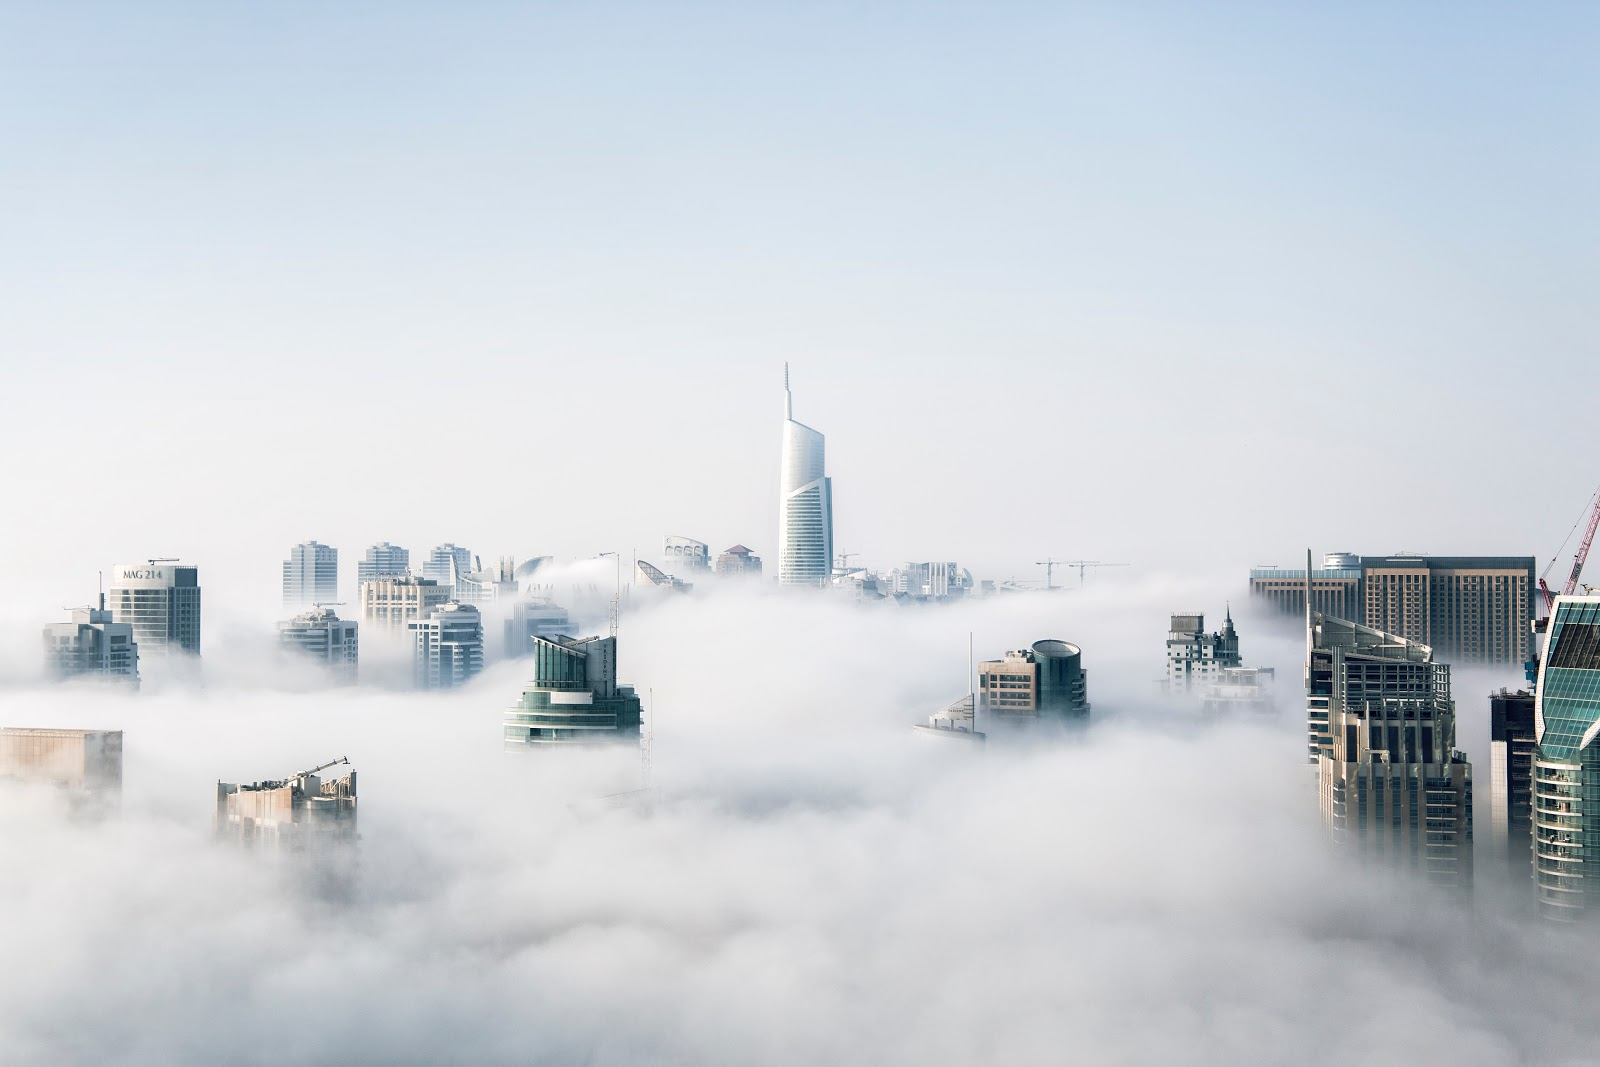 Buildings poke through clouds